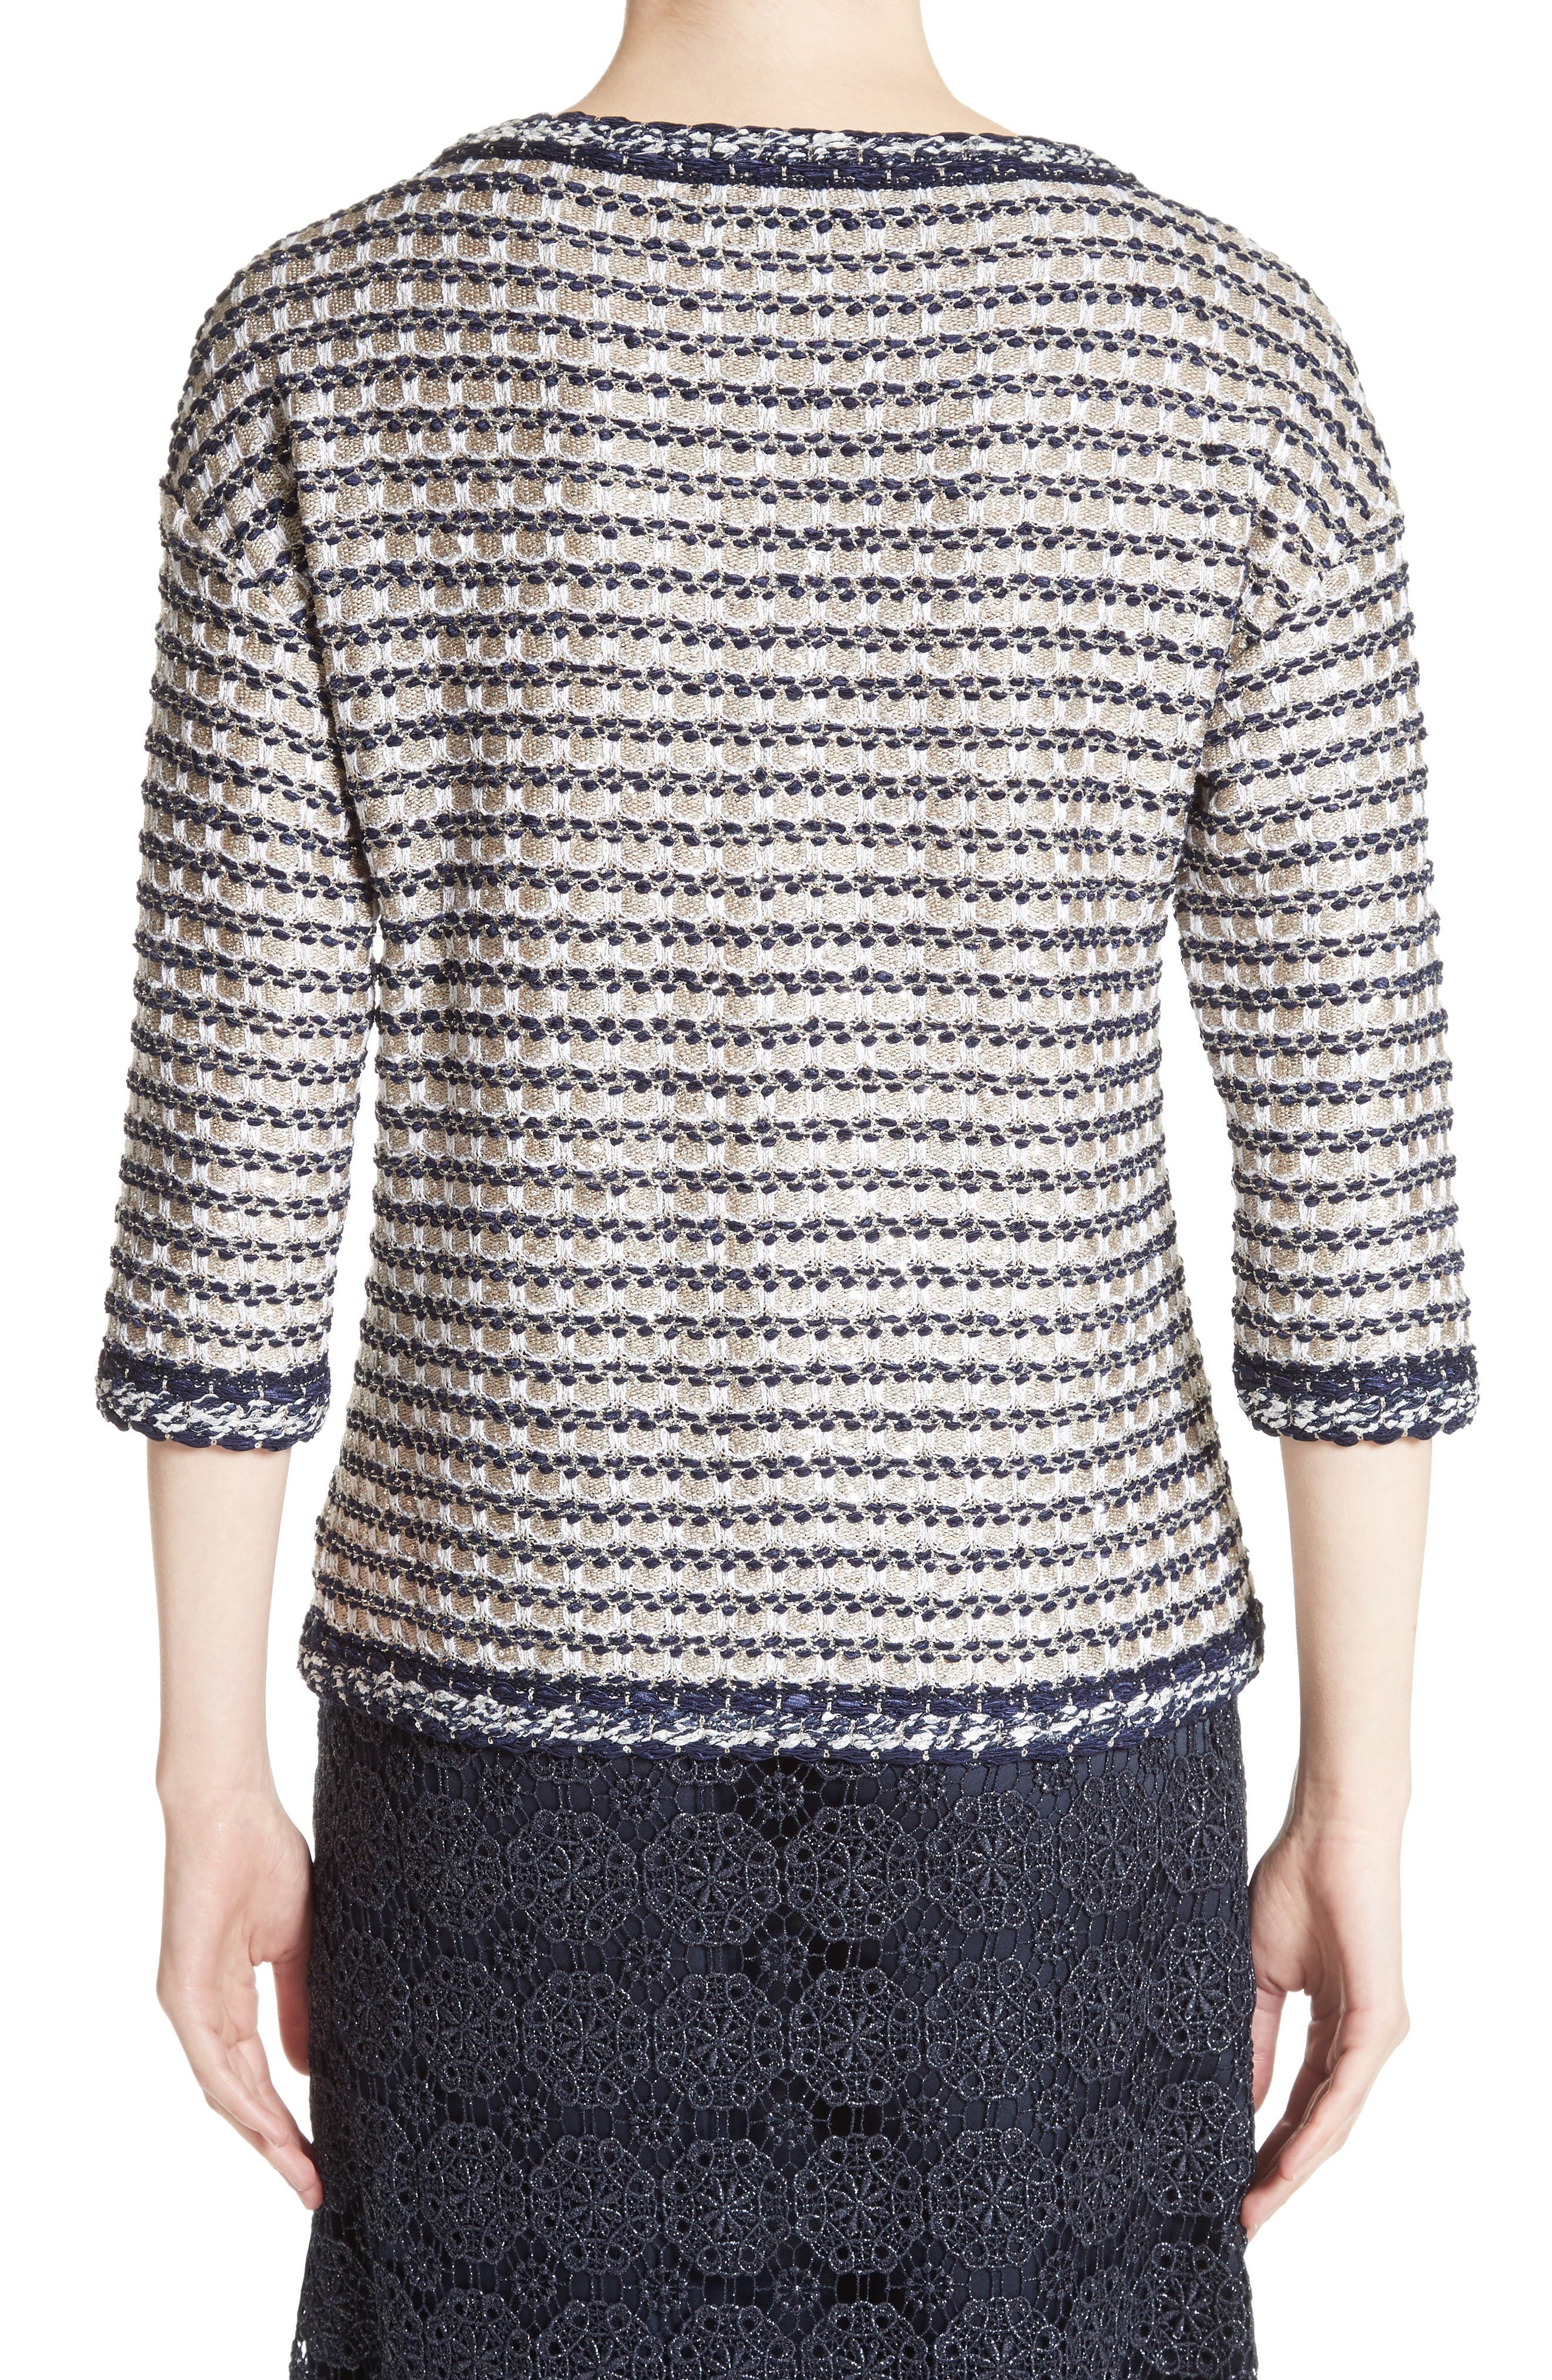 Vany Tweed Knit Top,                             Alternate thumbnail 2, color,                             Gold Multi